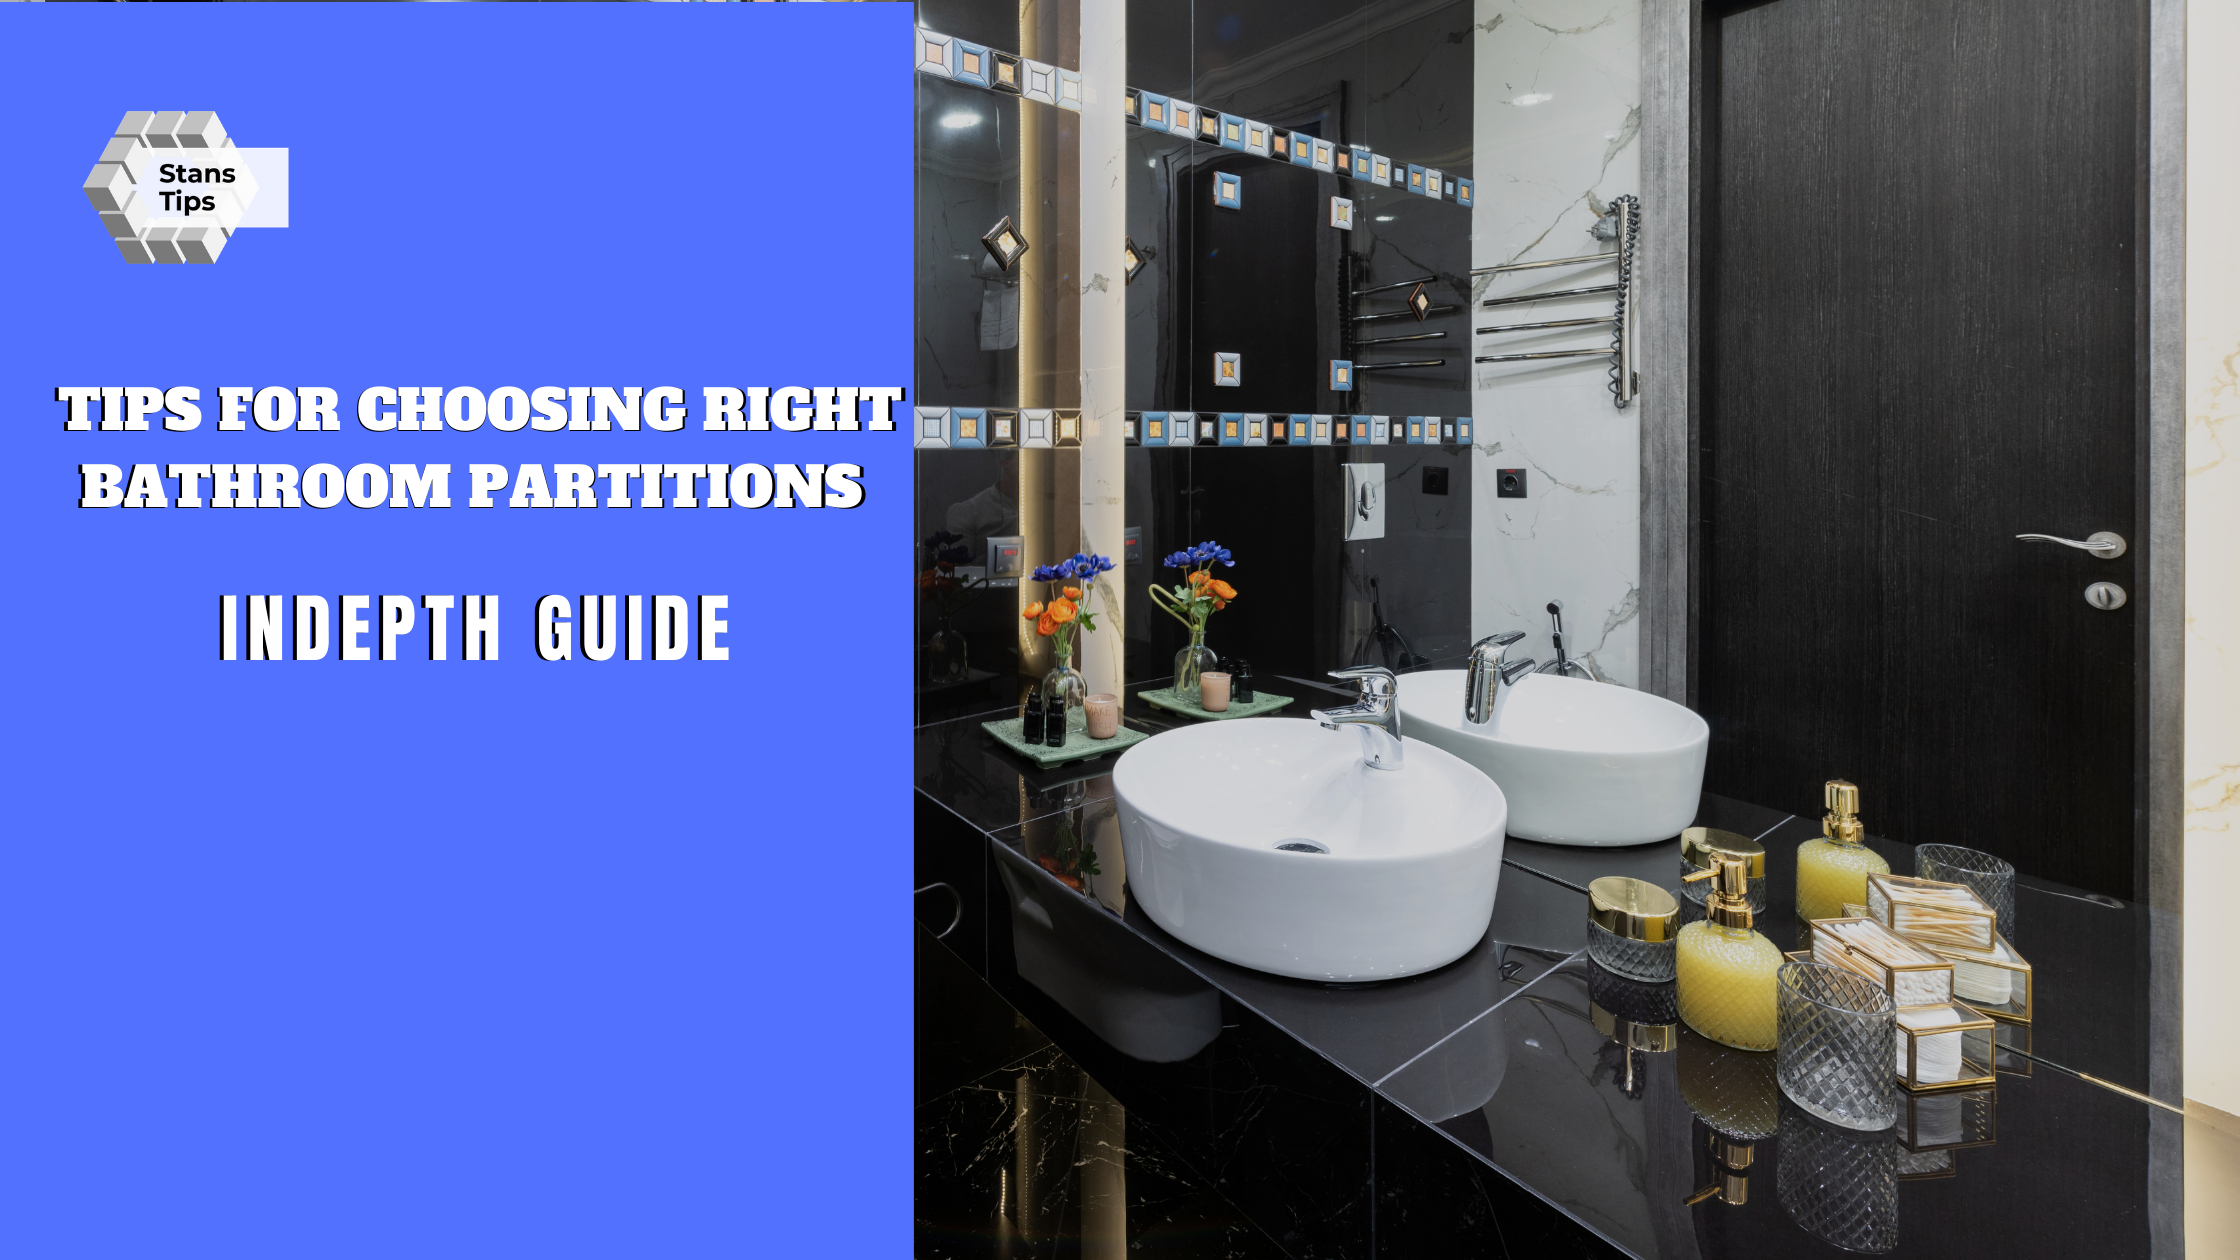 Tips For Choosing Right Bathroom Partations